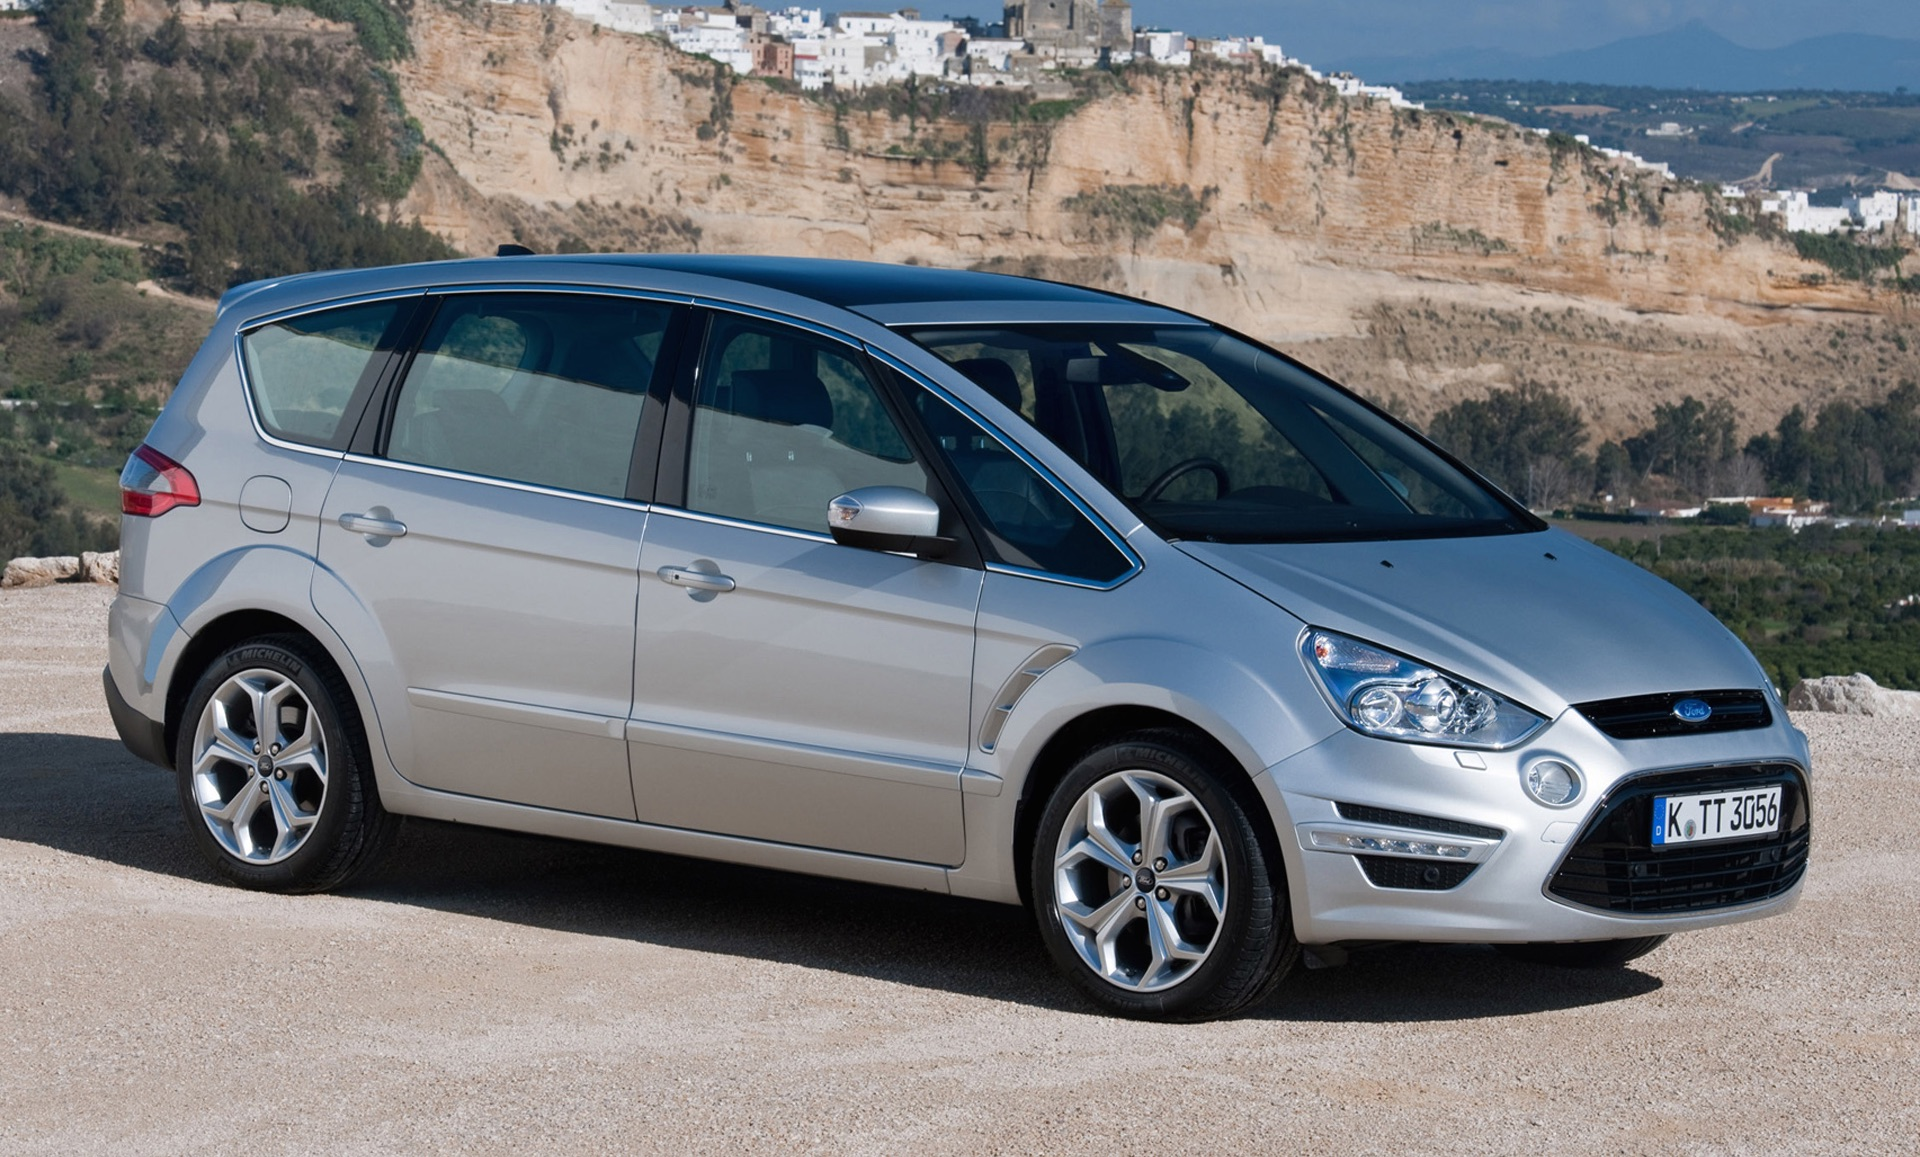 Ford S-Max 1.8 2010 photo - 9